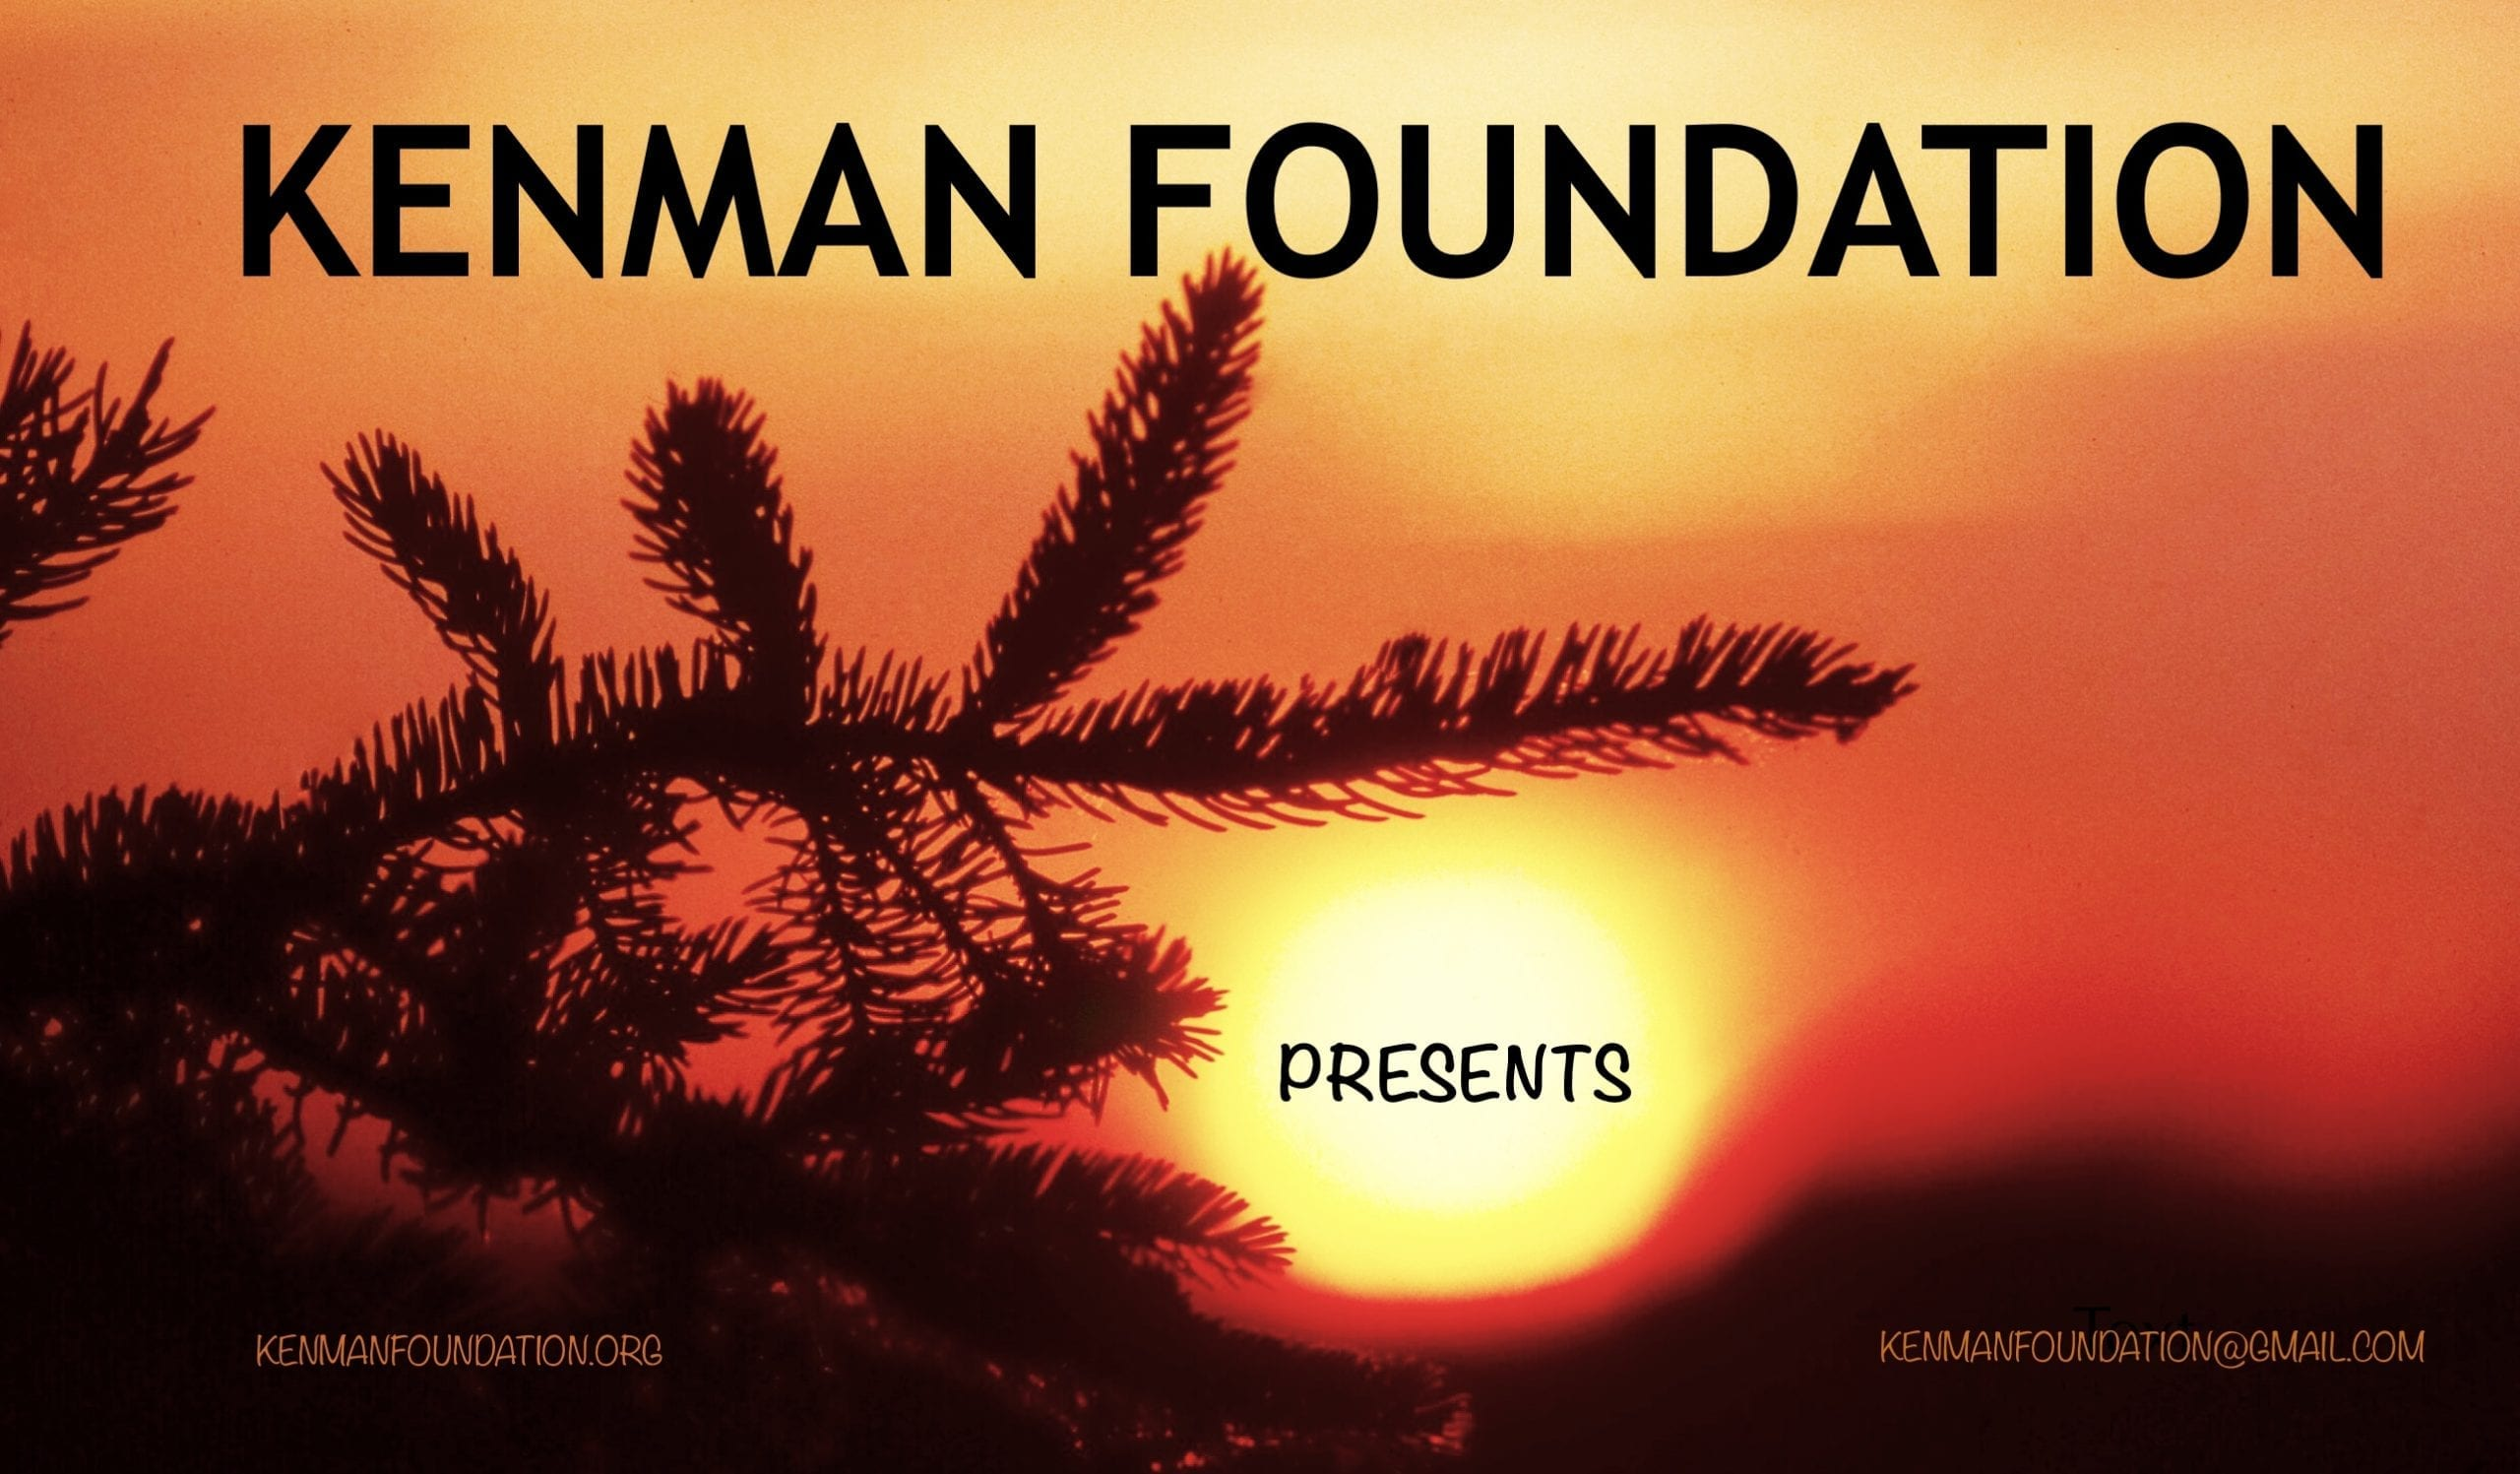 KENMAN FOUNDATION